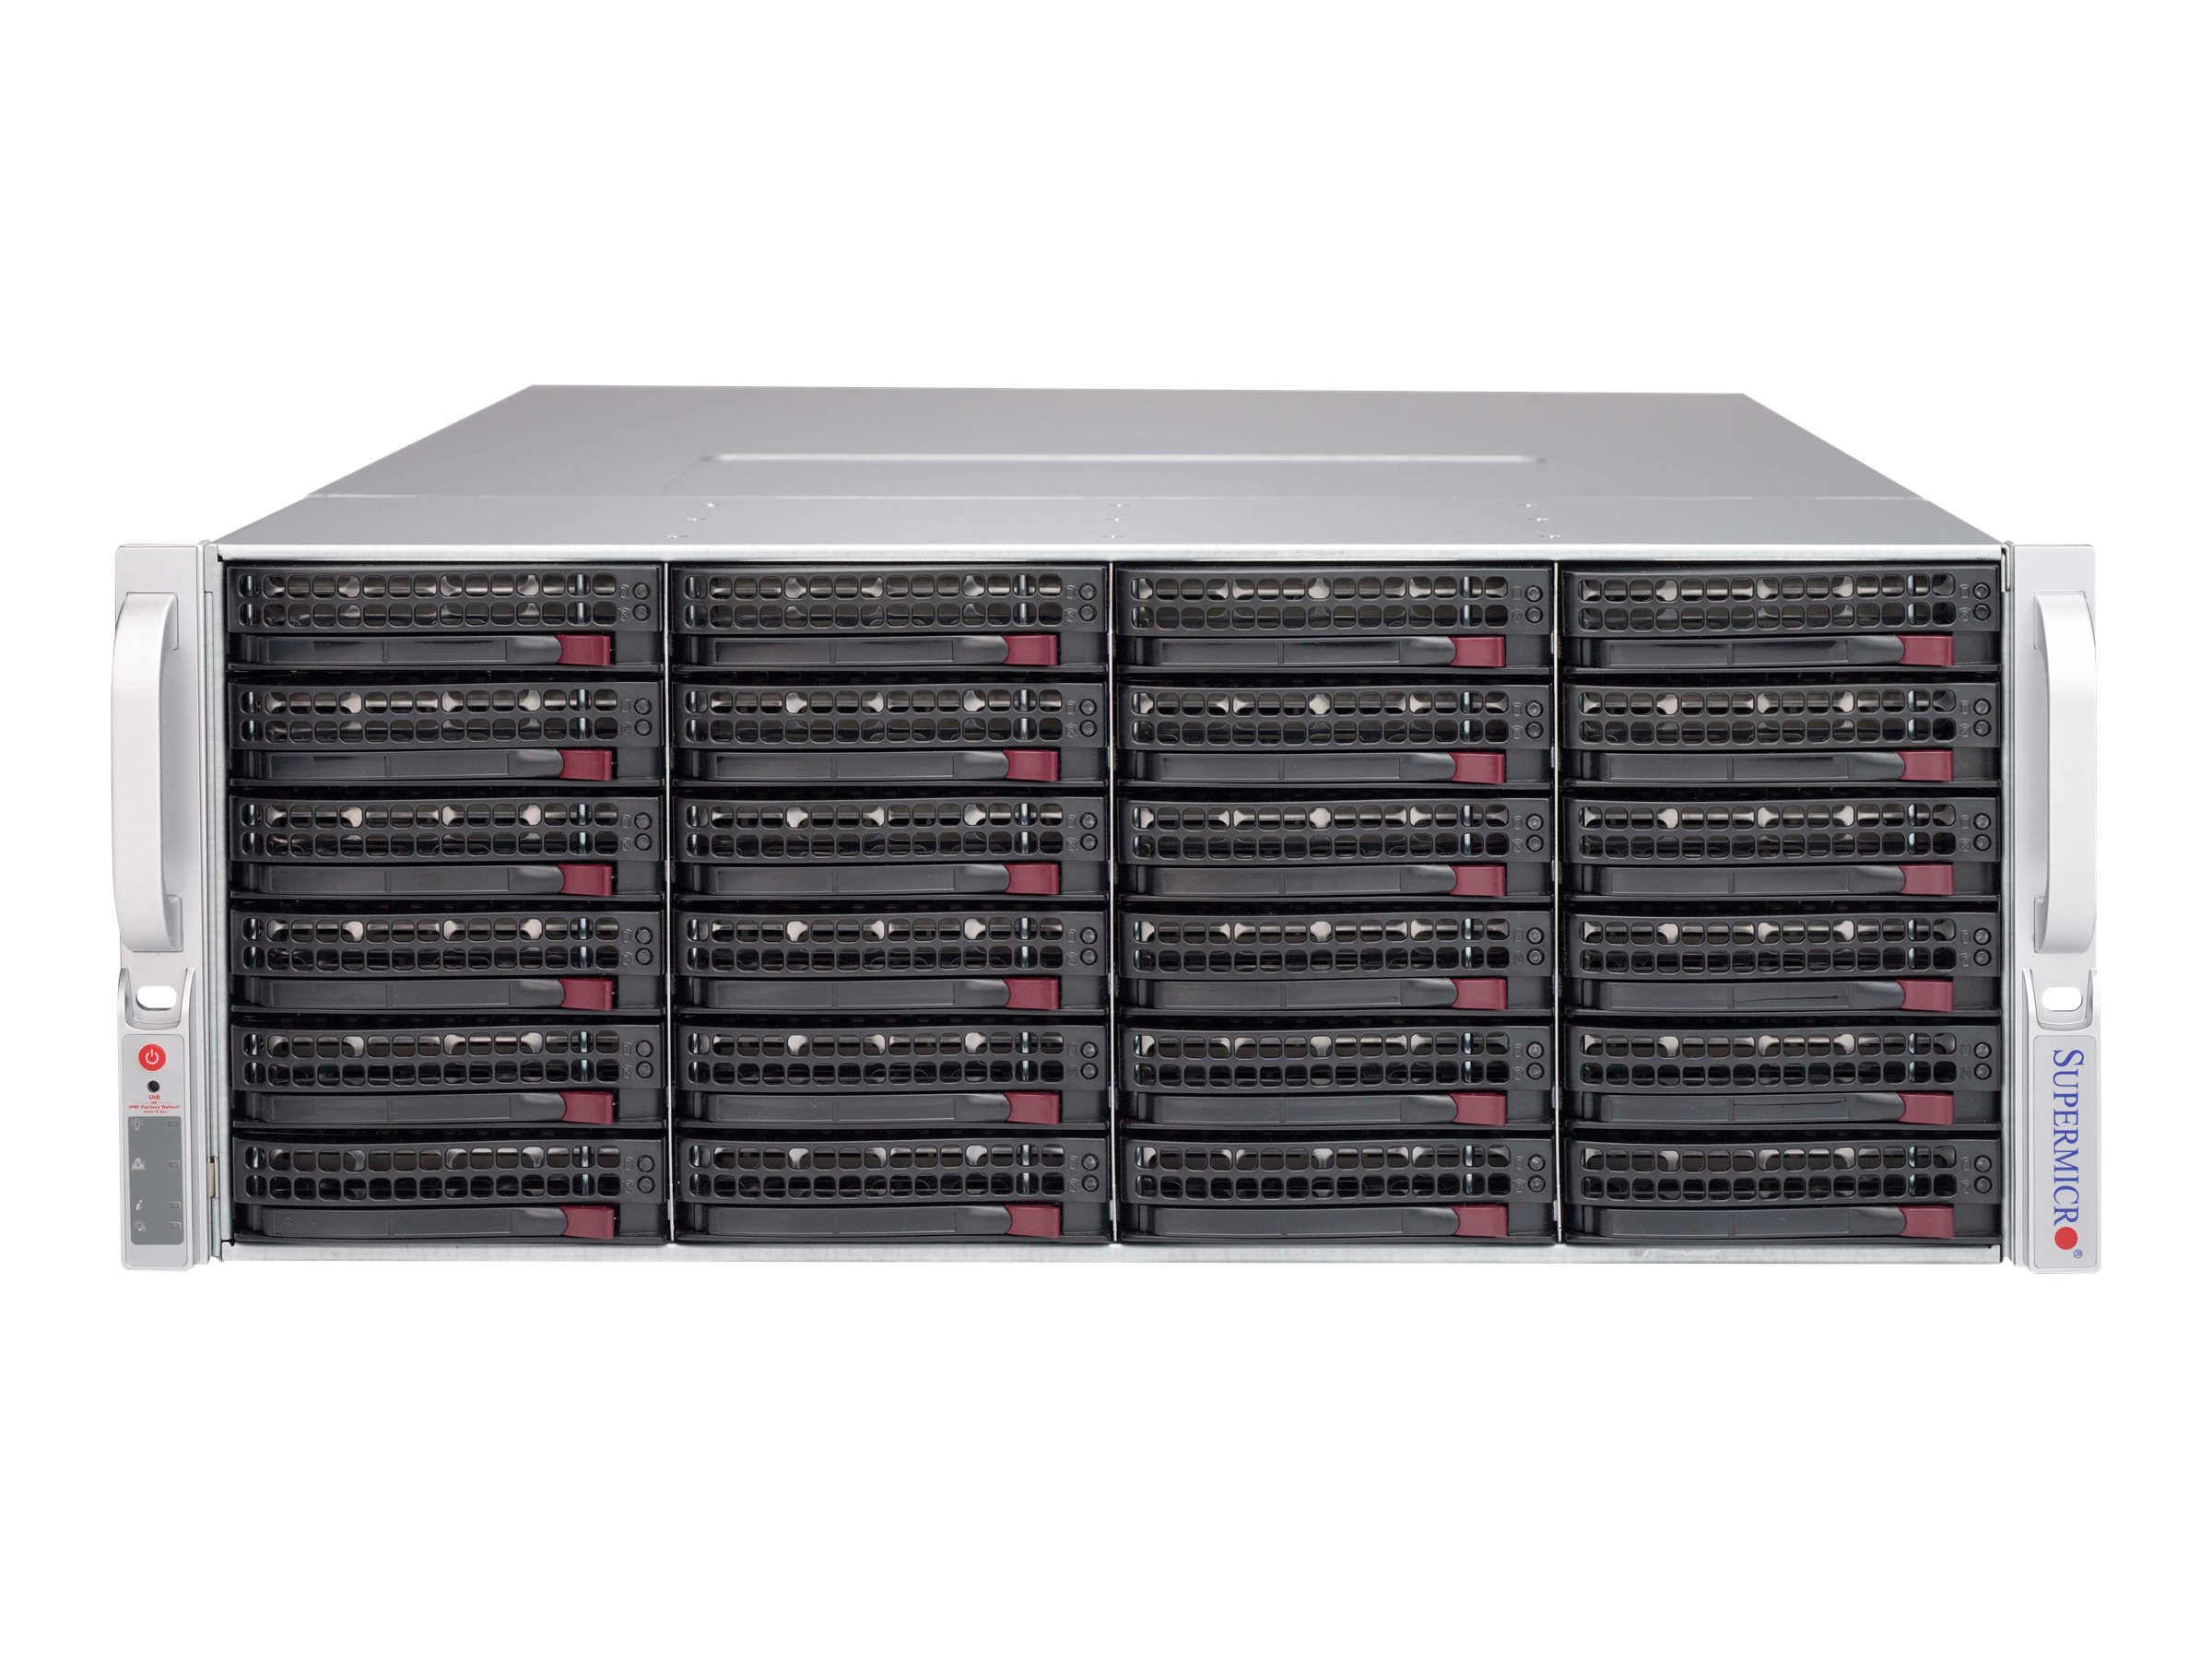 Supermicro Chassis, SuperChassis 847E1C 4U RM 44x3.5 HS Bays JBOD 2x1280W, Black